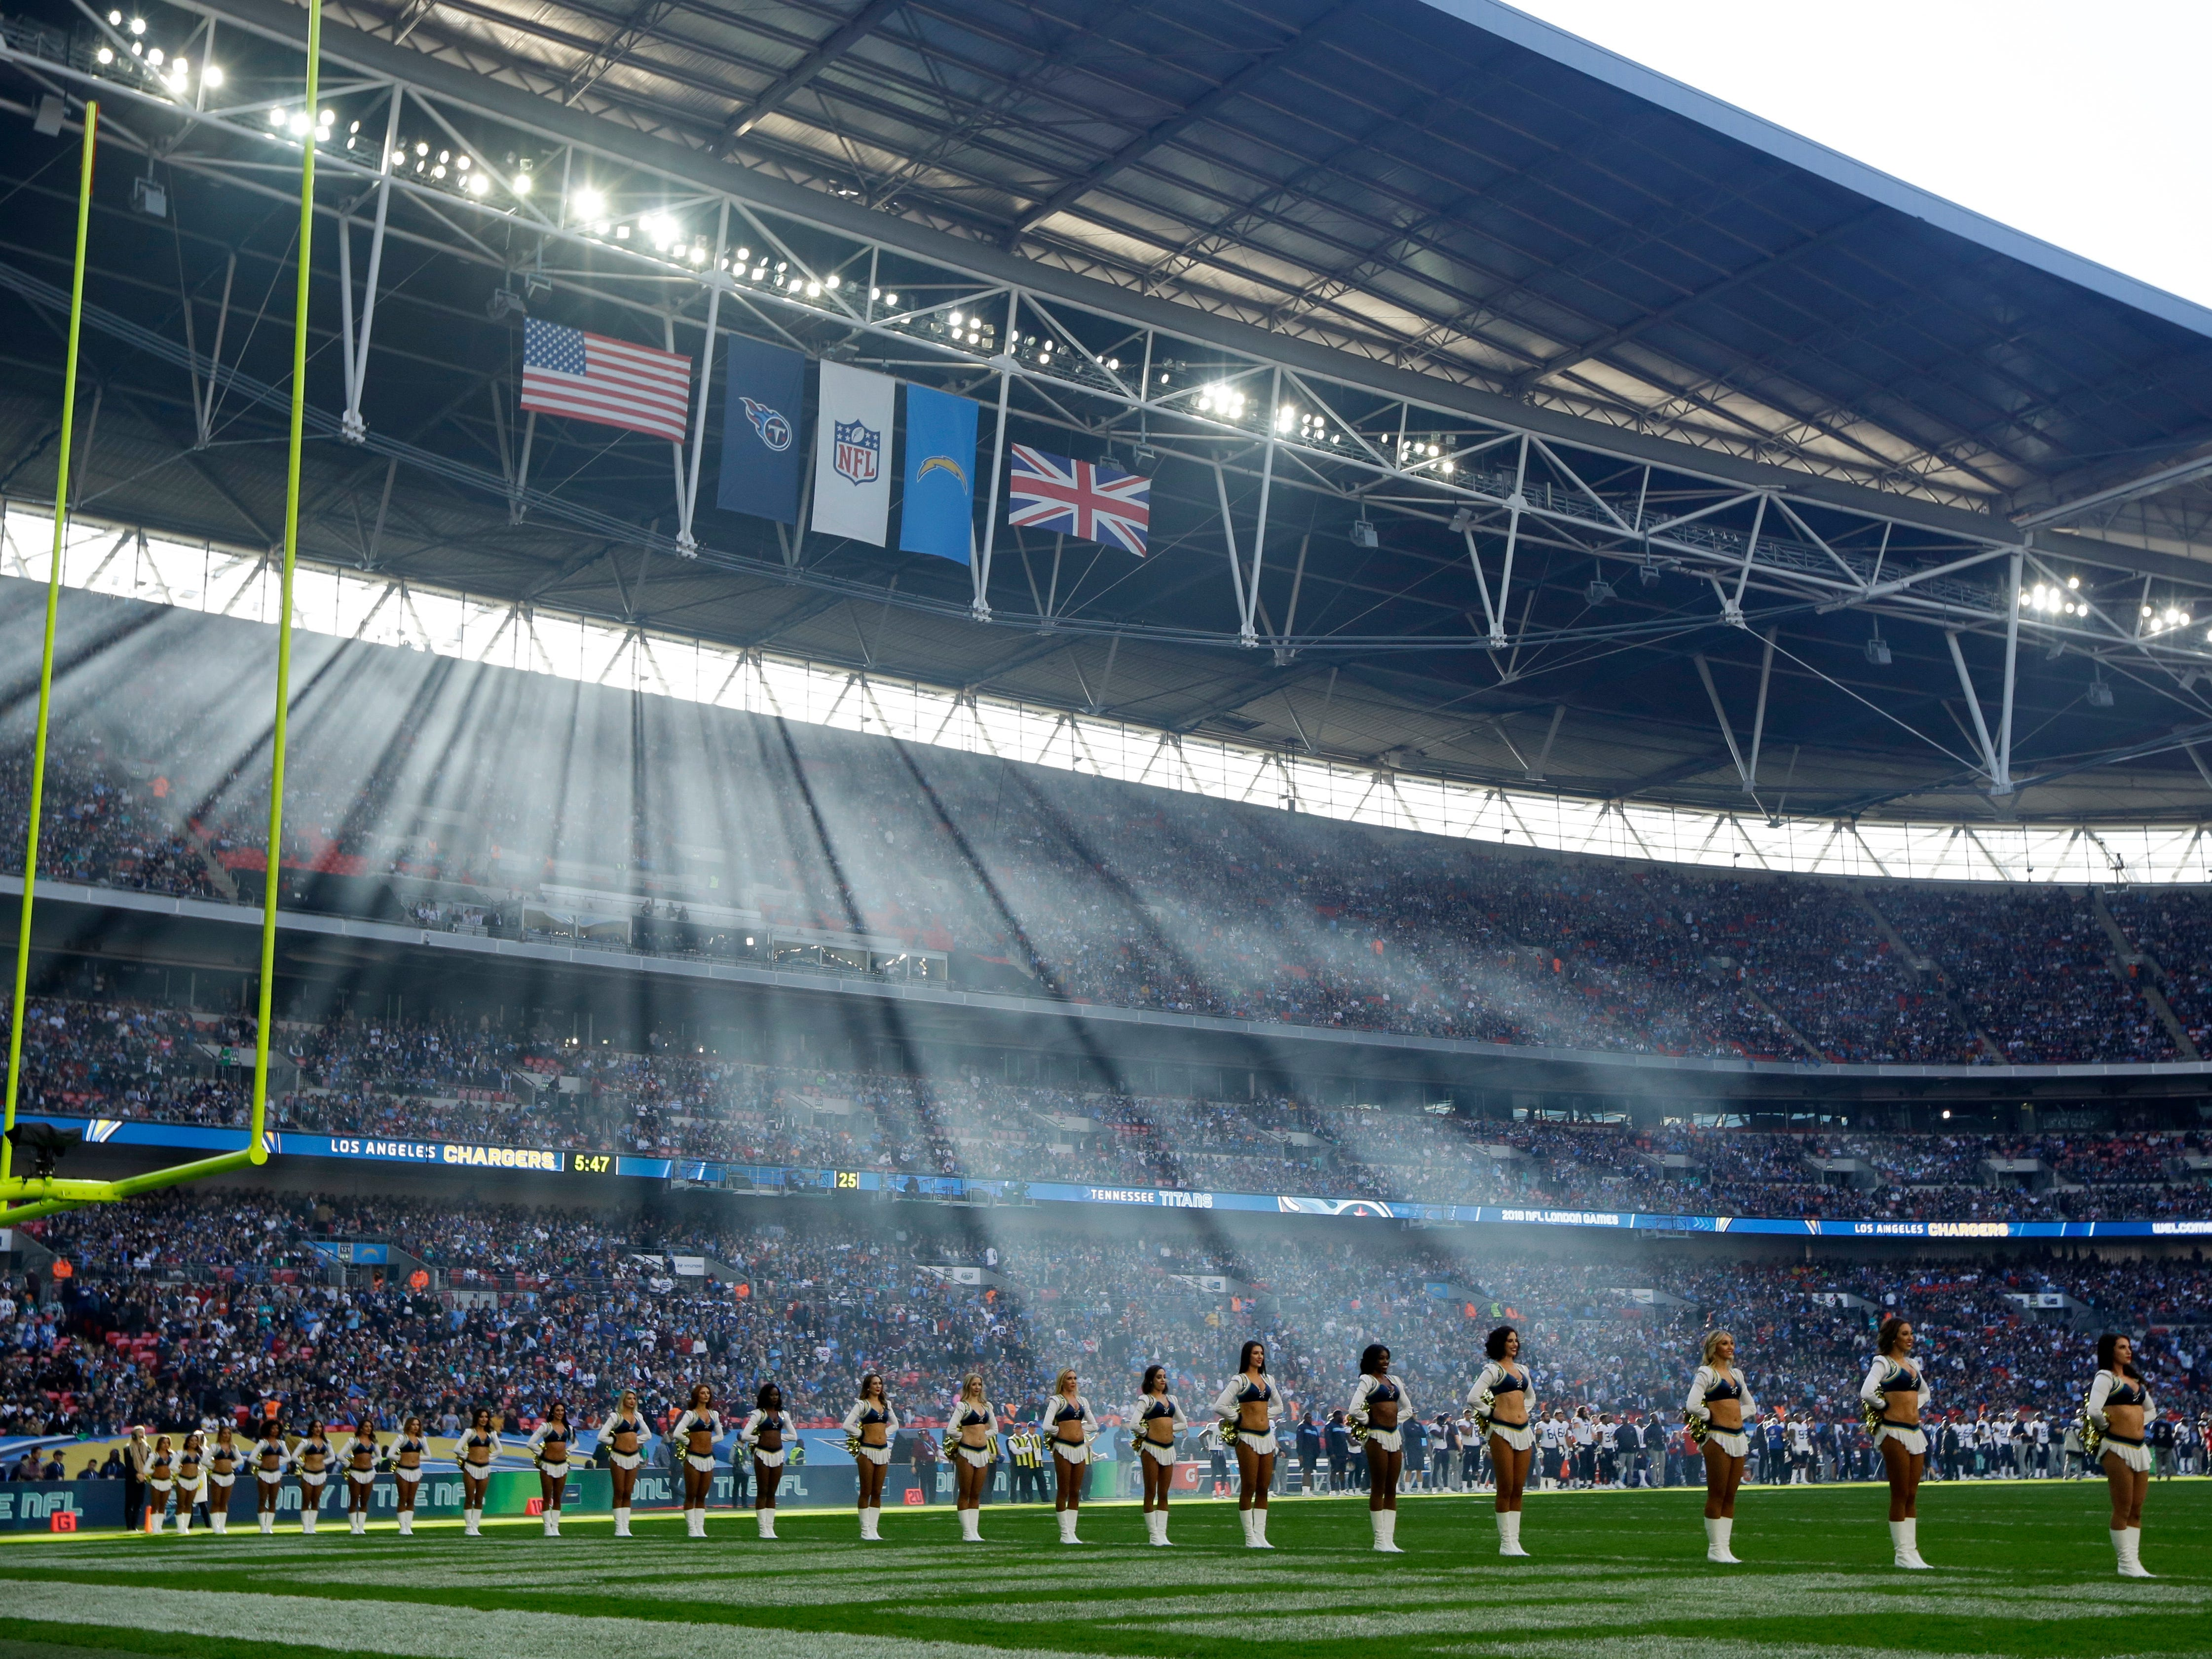 Cheerleaders line up before an NFL football game between Tennessee Titans and Los Angeles Chargers at Wembley stadium in London, Sunday, Oct. 21, 2018.